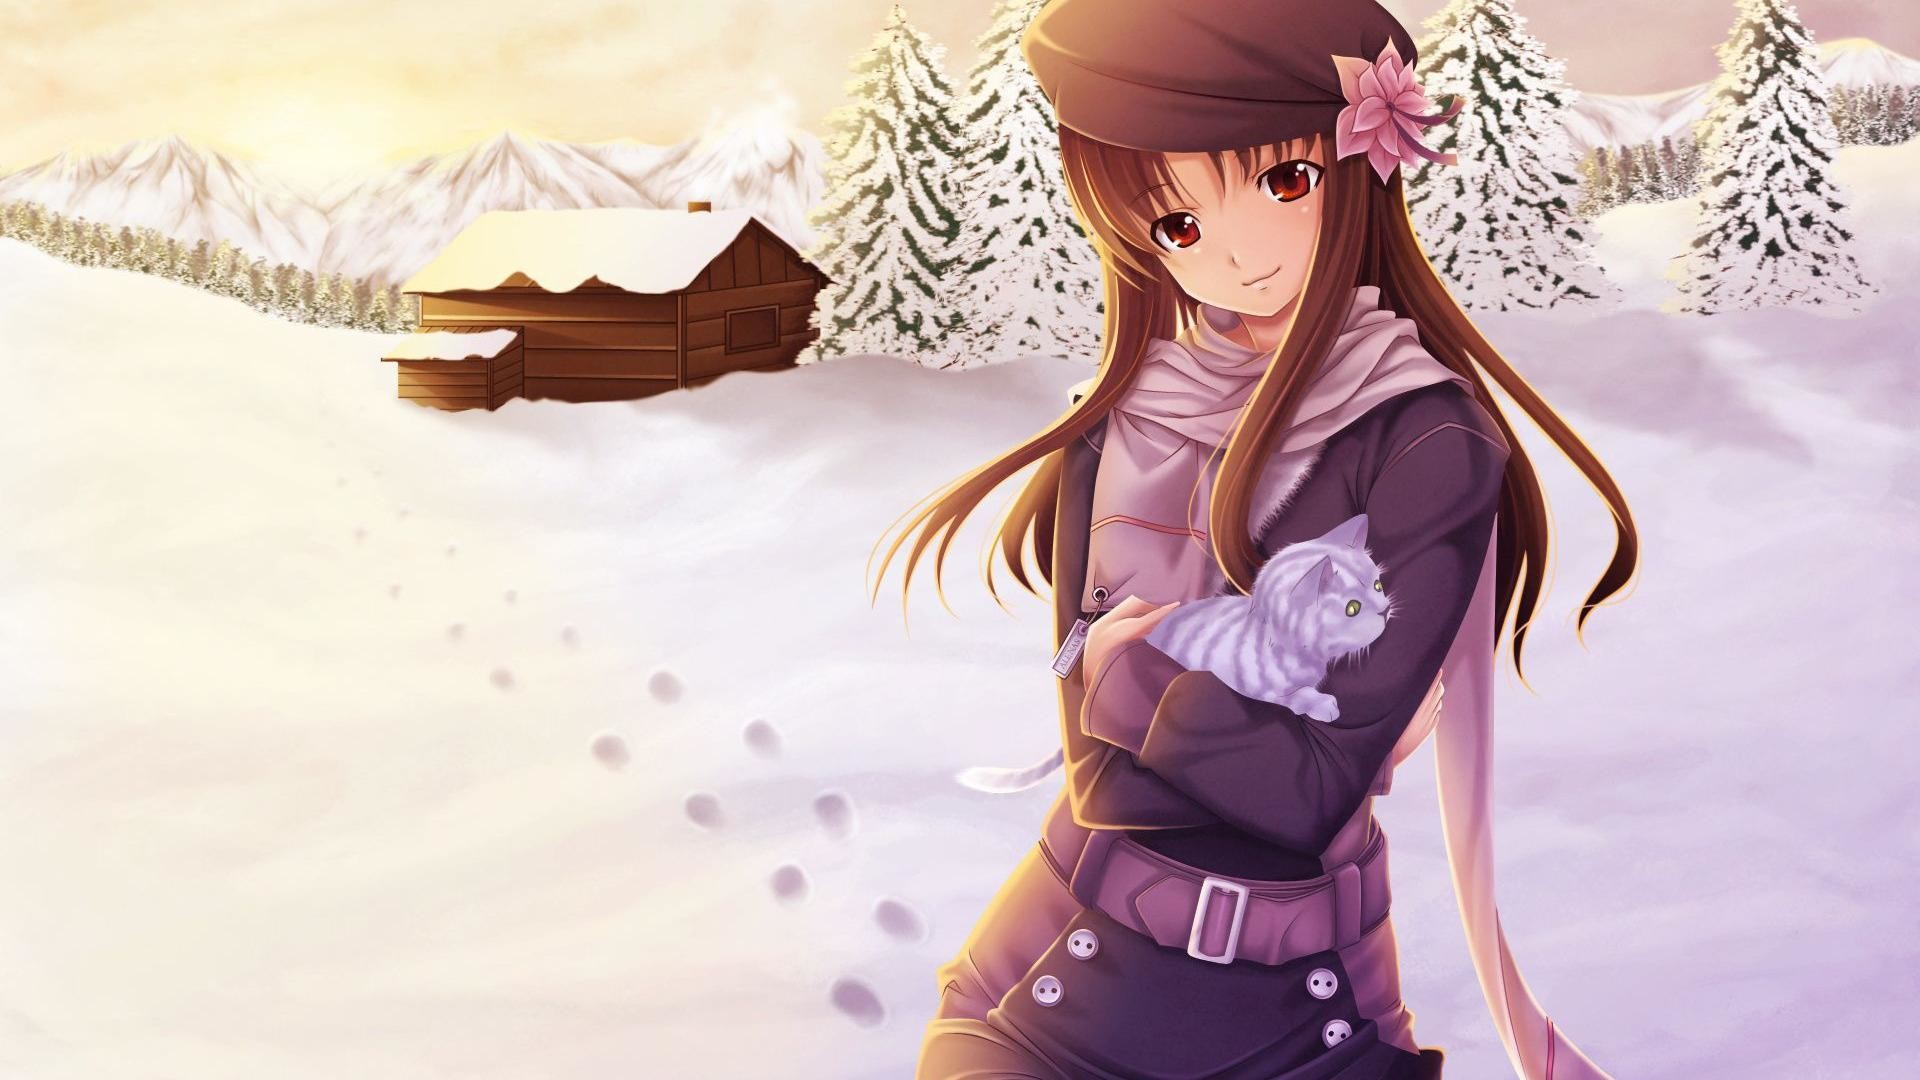 1920x1080 24 Anime Backgrounds, Wallpapers, Images, Pictures | Design .